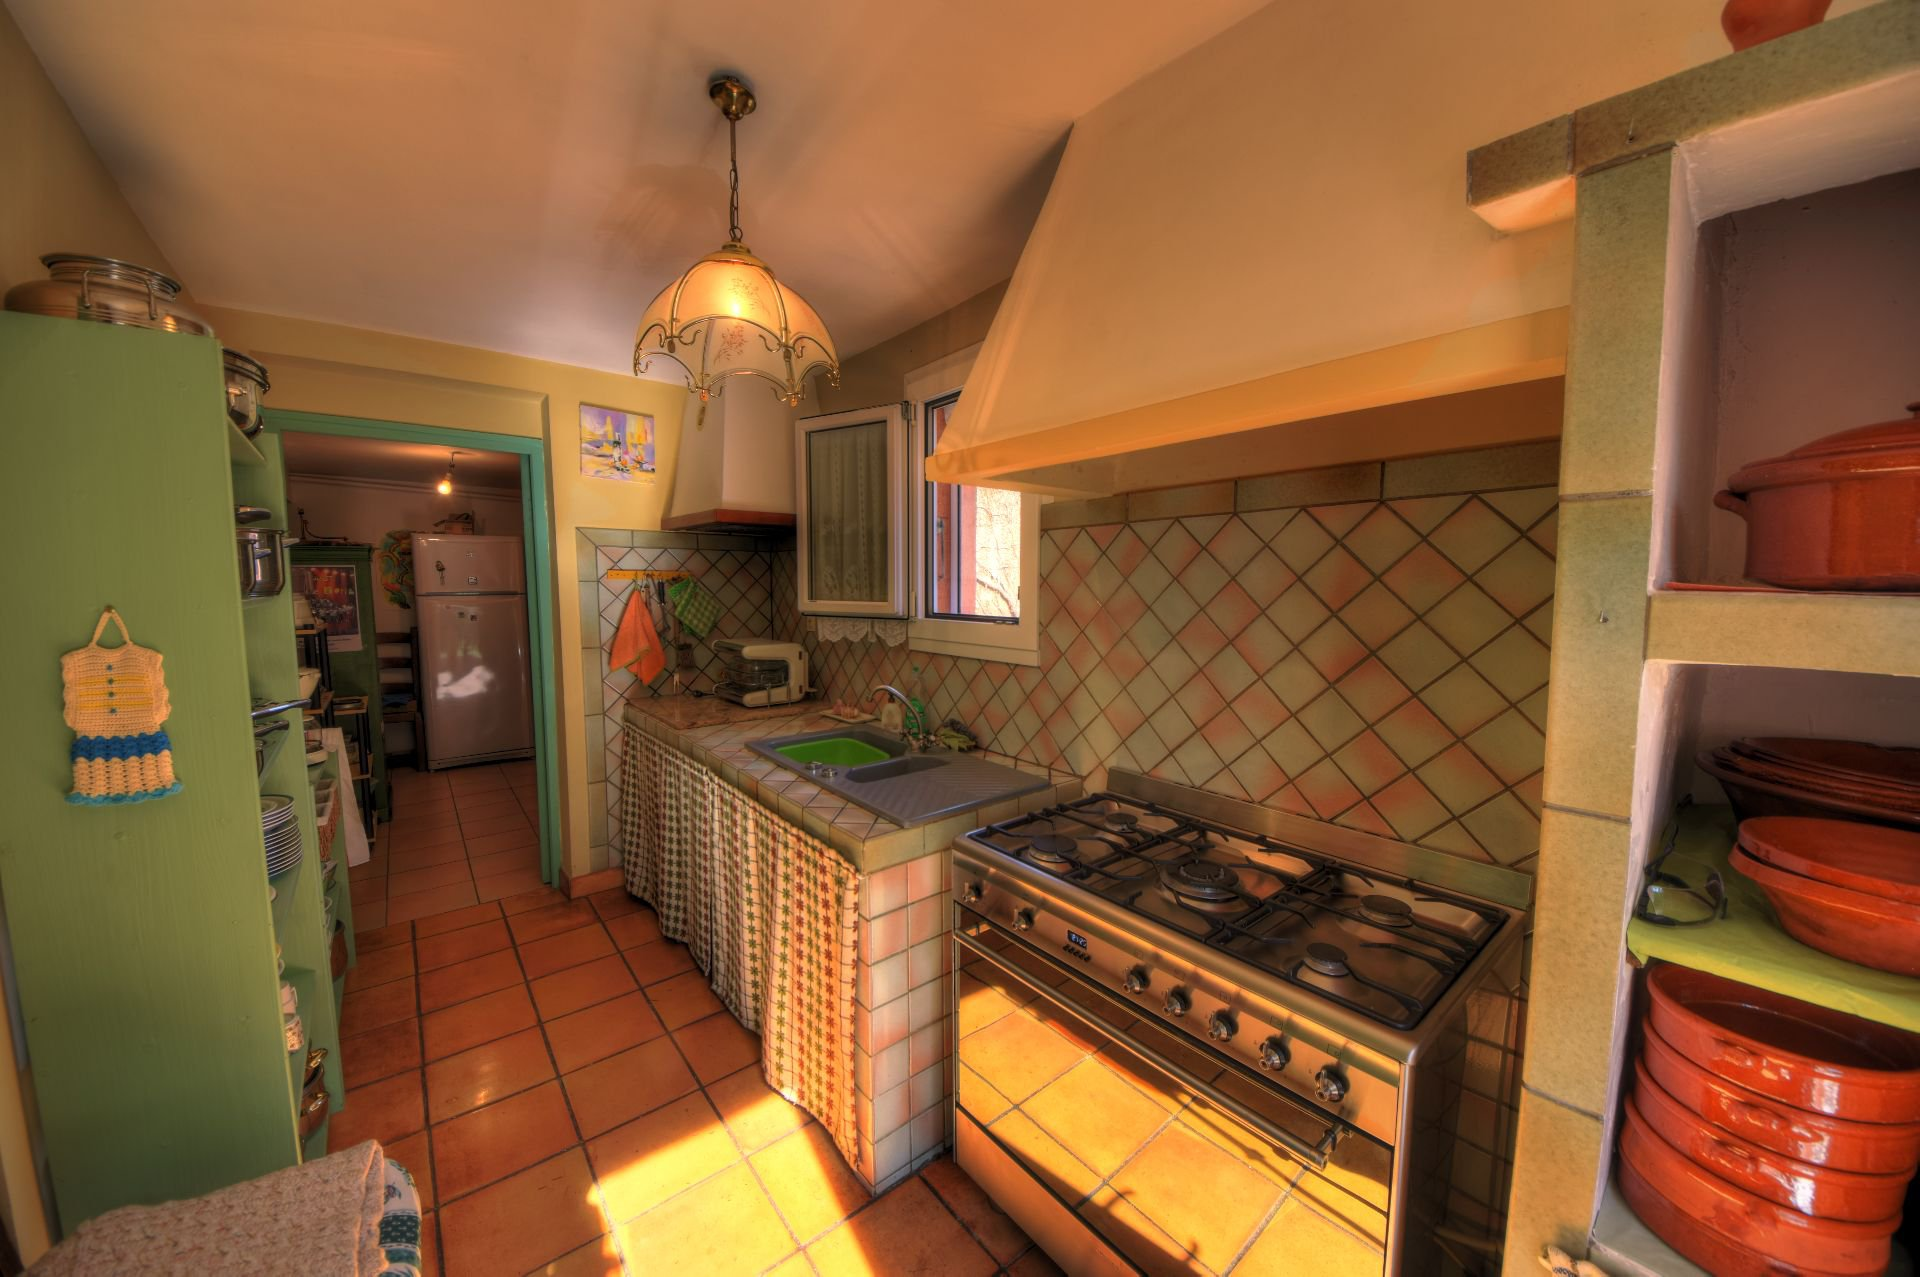 Second kitchen of the house of the small property of 4 ha, Barjols, Var, Provence